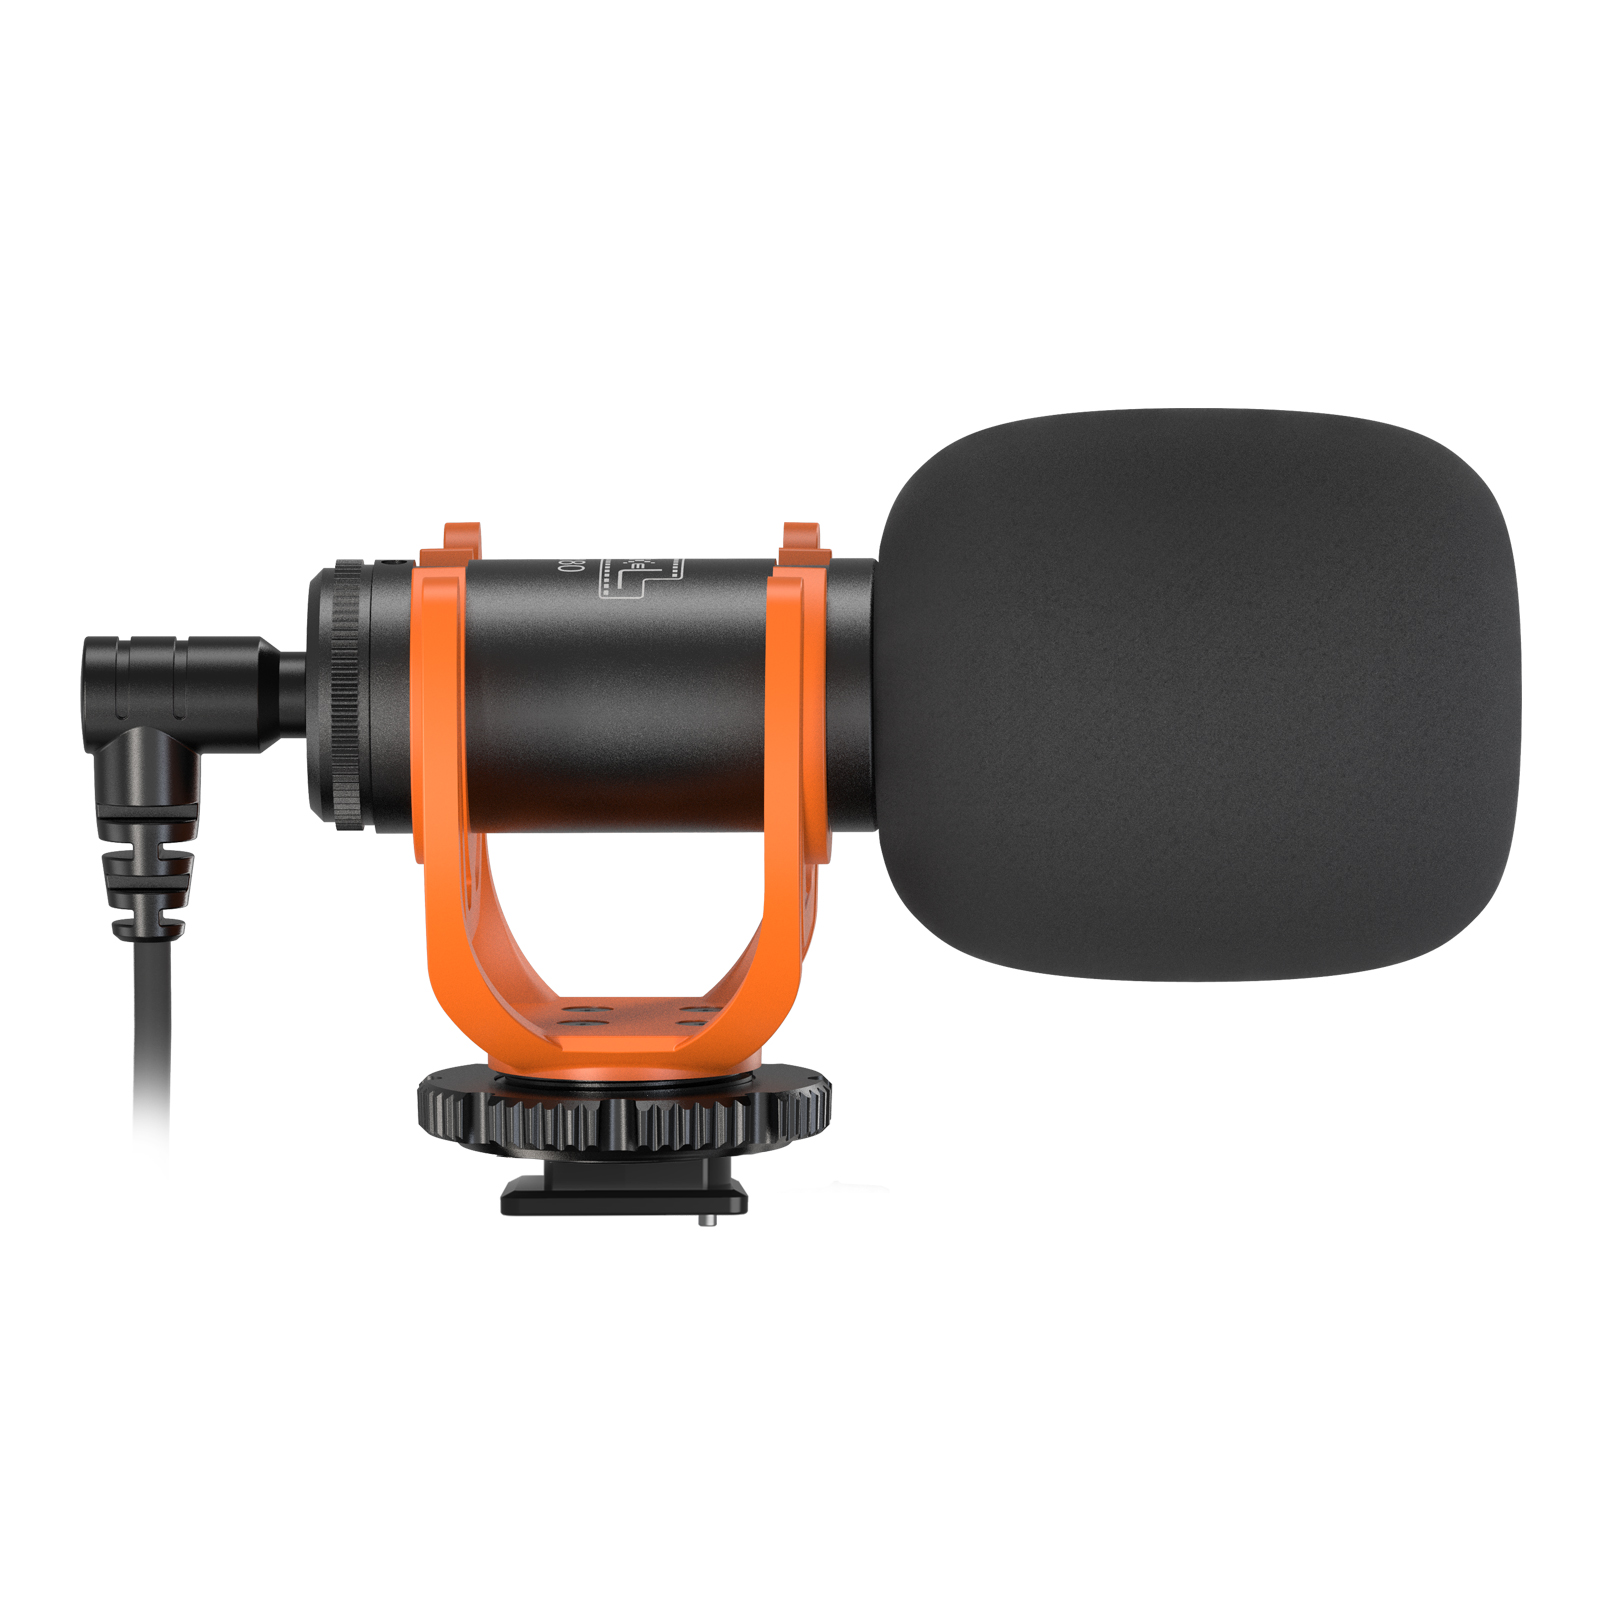 Pixel M80 Microphone, intelligent noise reduction and comprehensive radio